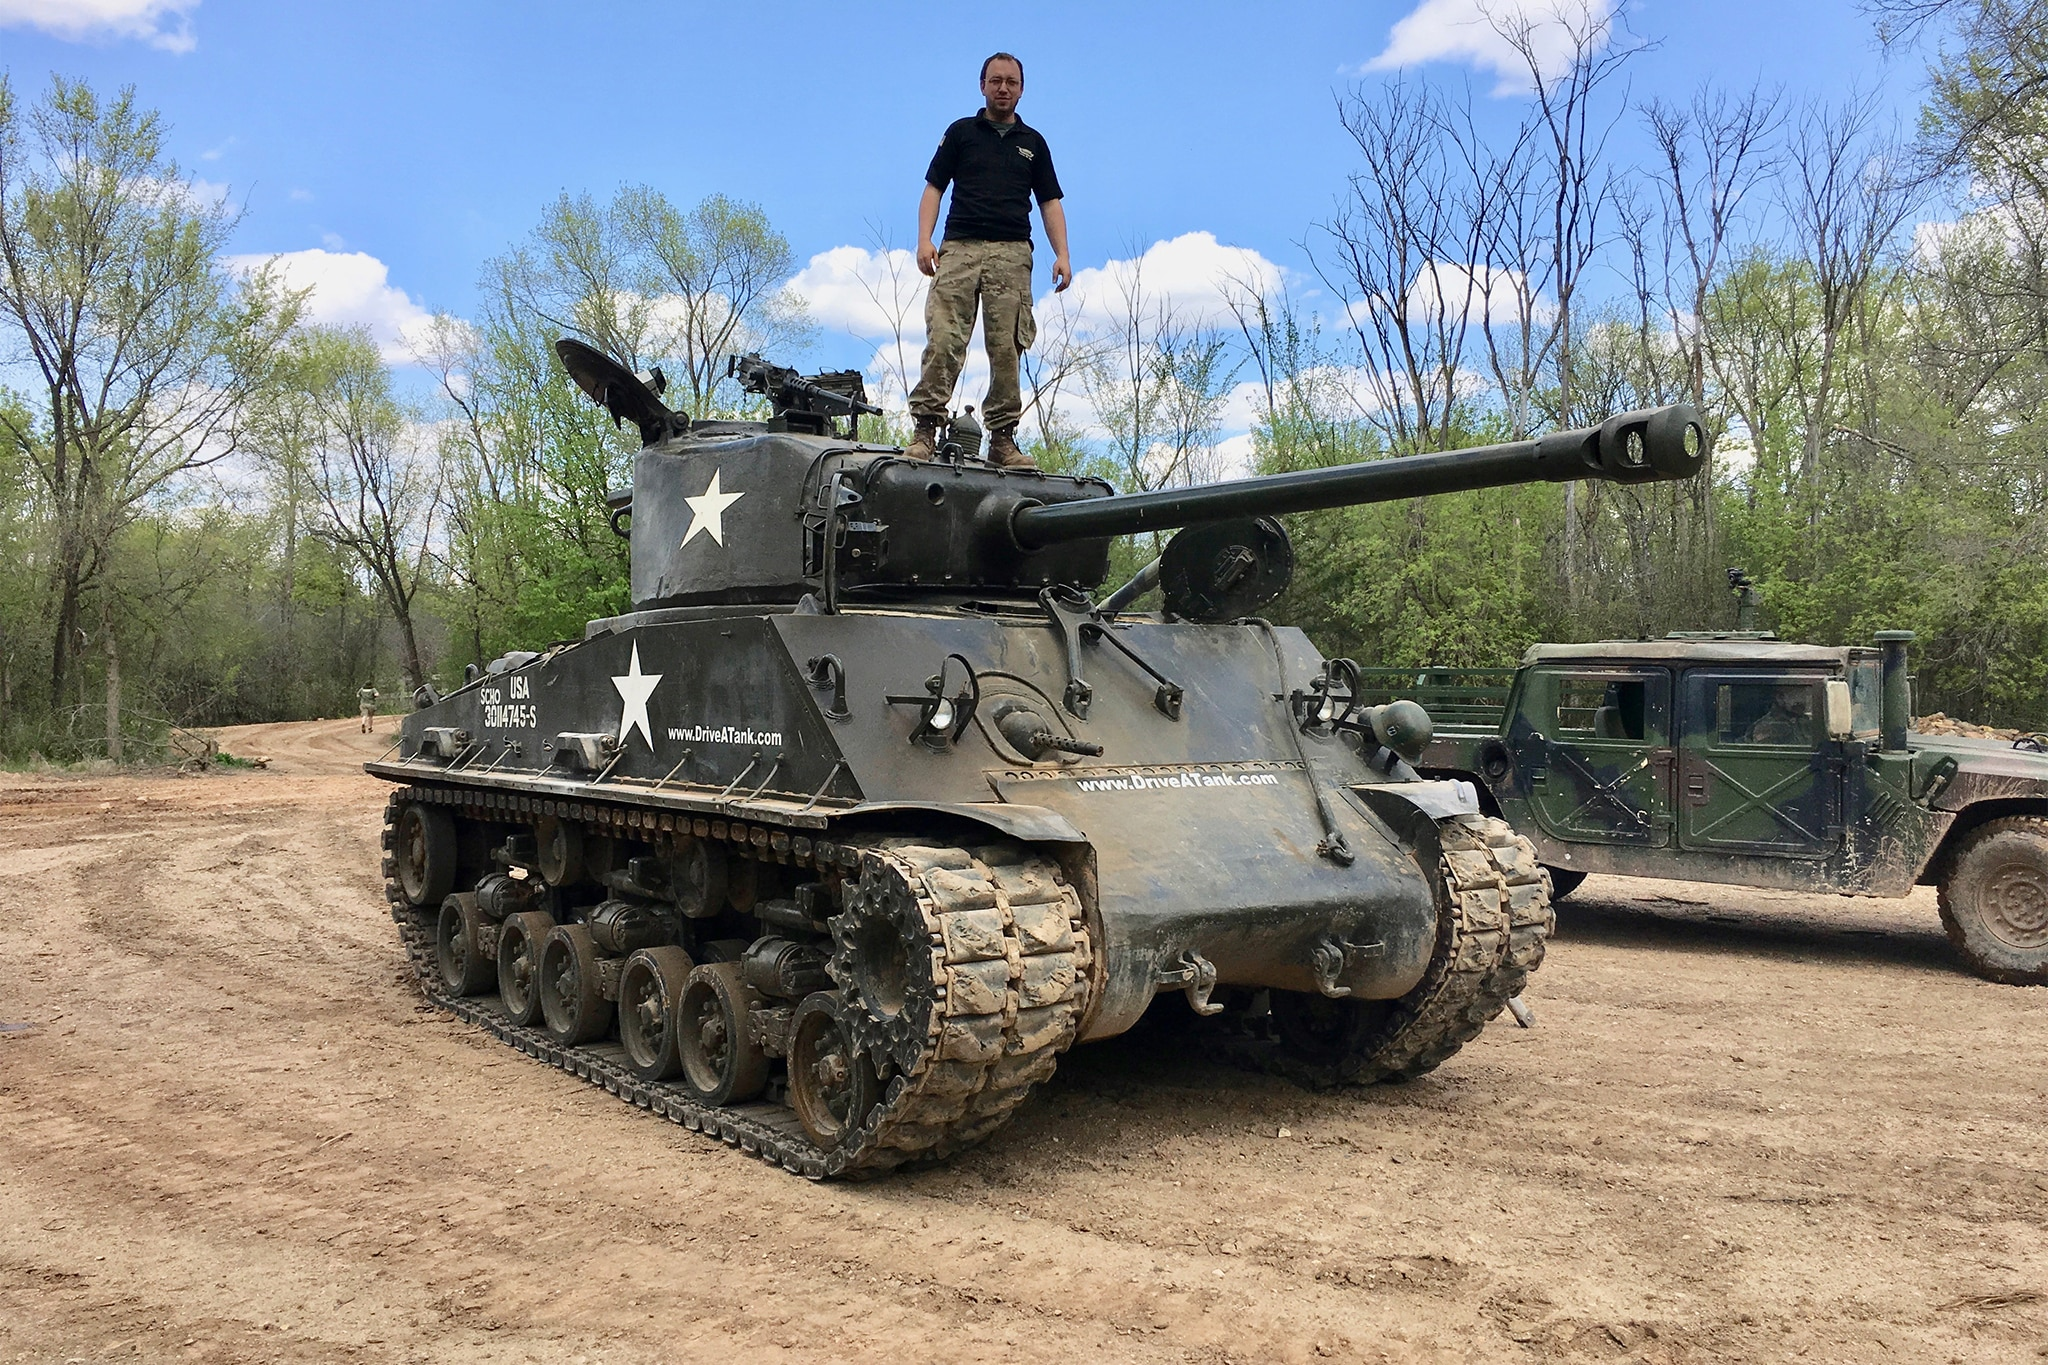 tank drive sherman era wwii earning stripes packages call start visit